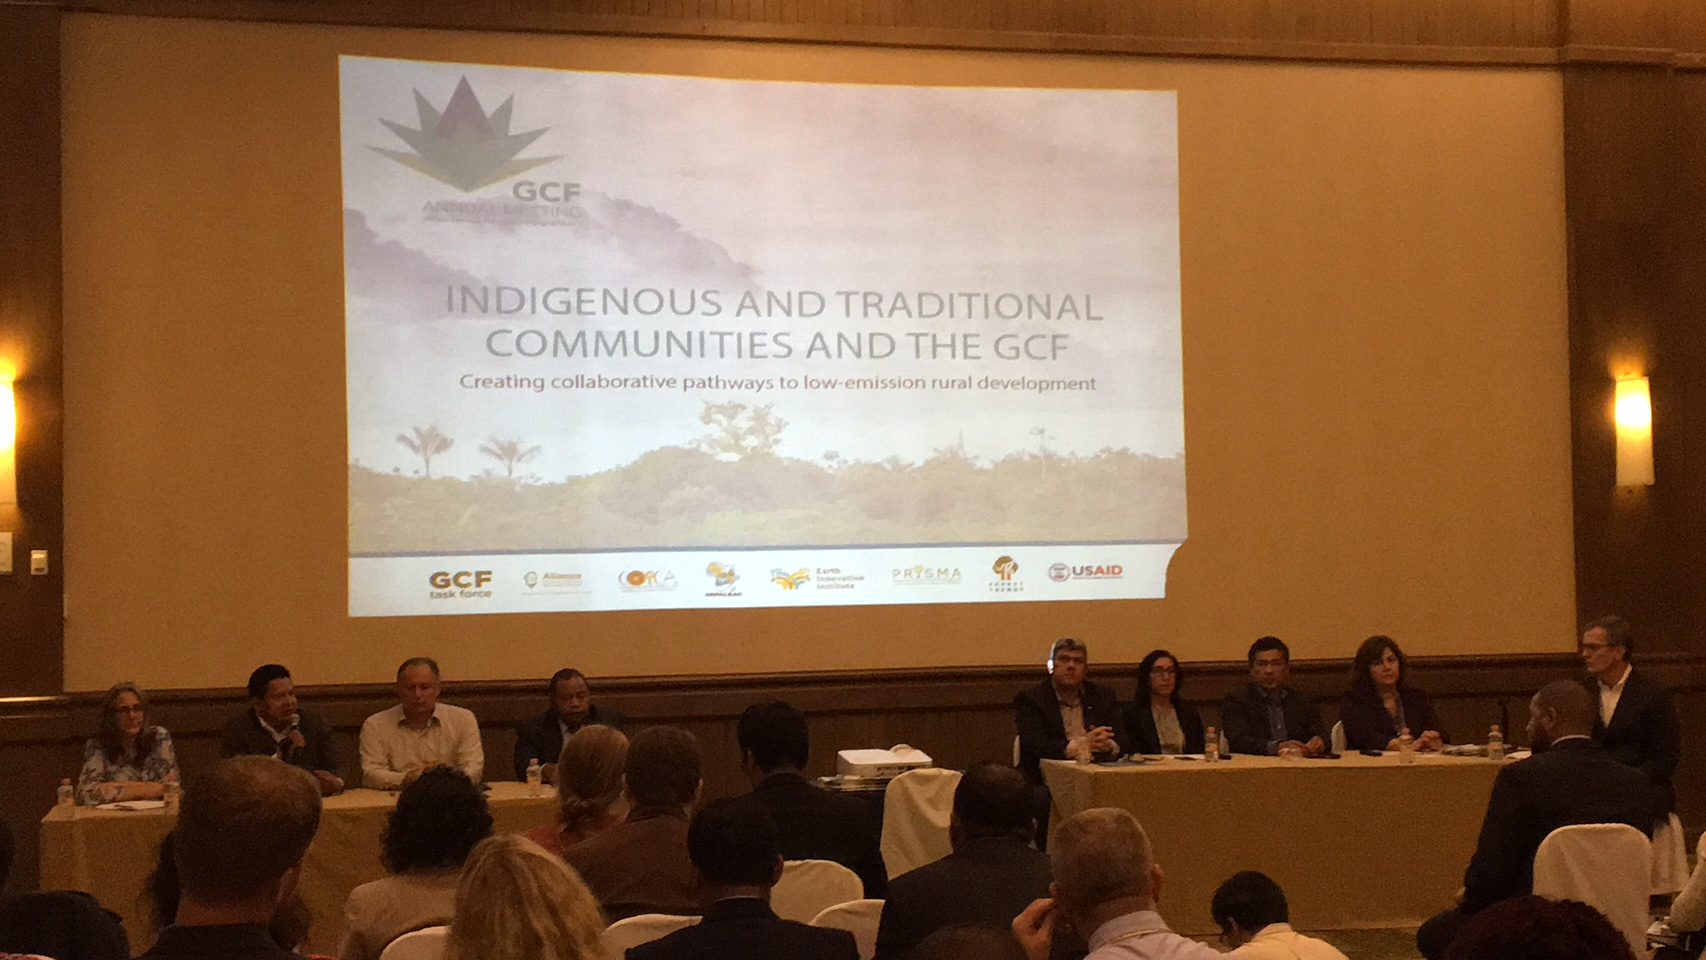 Indigenous communities and the GCF